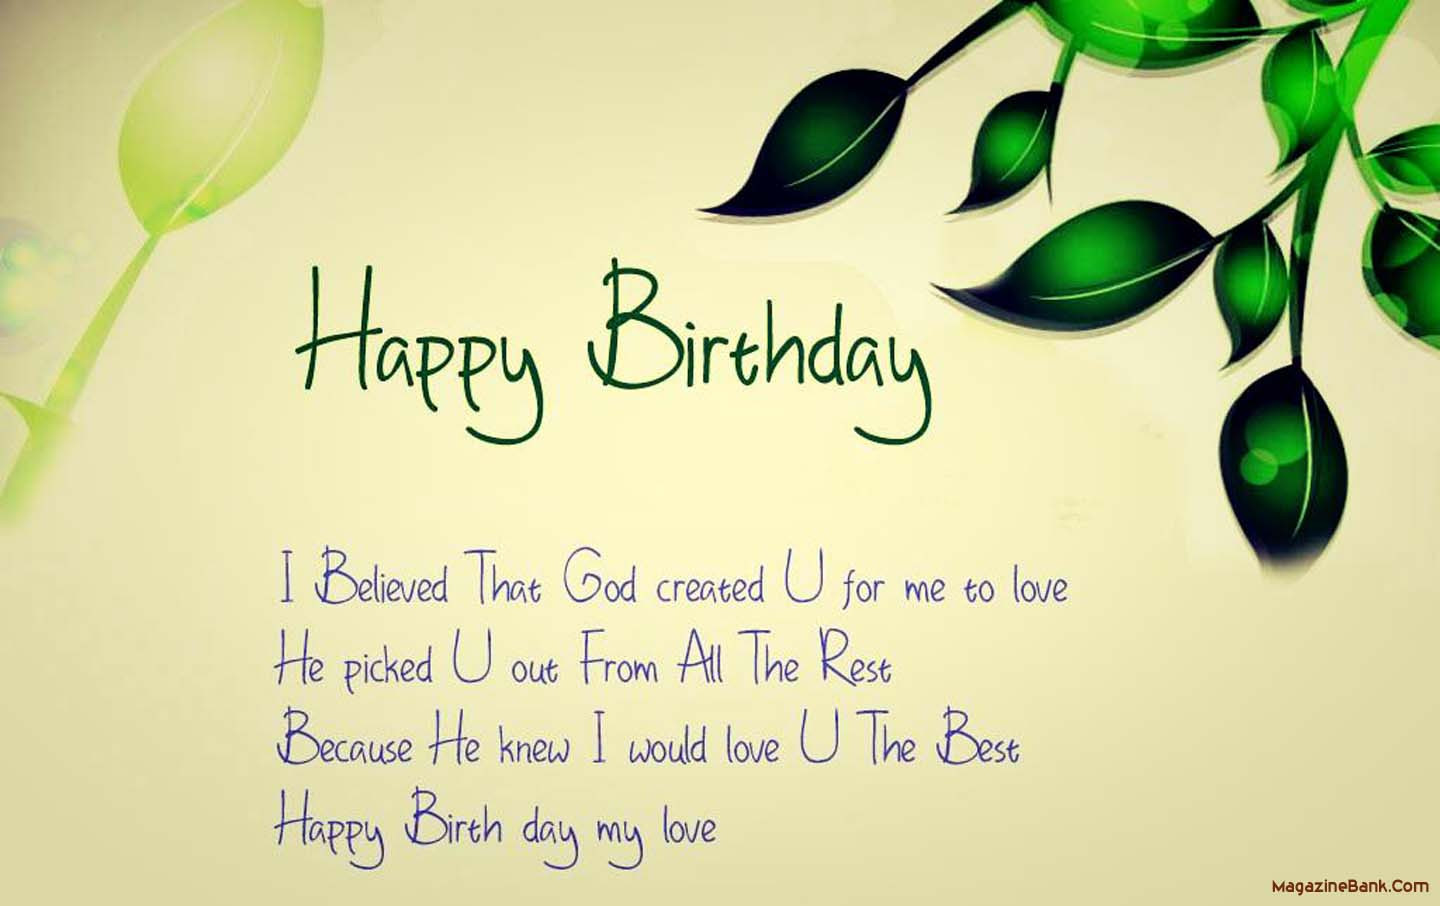 Best ideas about Quotation Birthday Wishes . Save or Pin Happy Birthday Boss Quotes From Us QuotesGram Now.